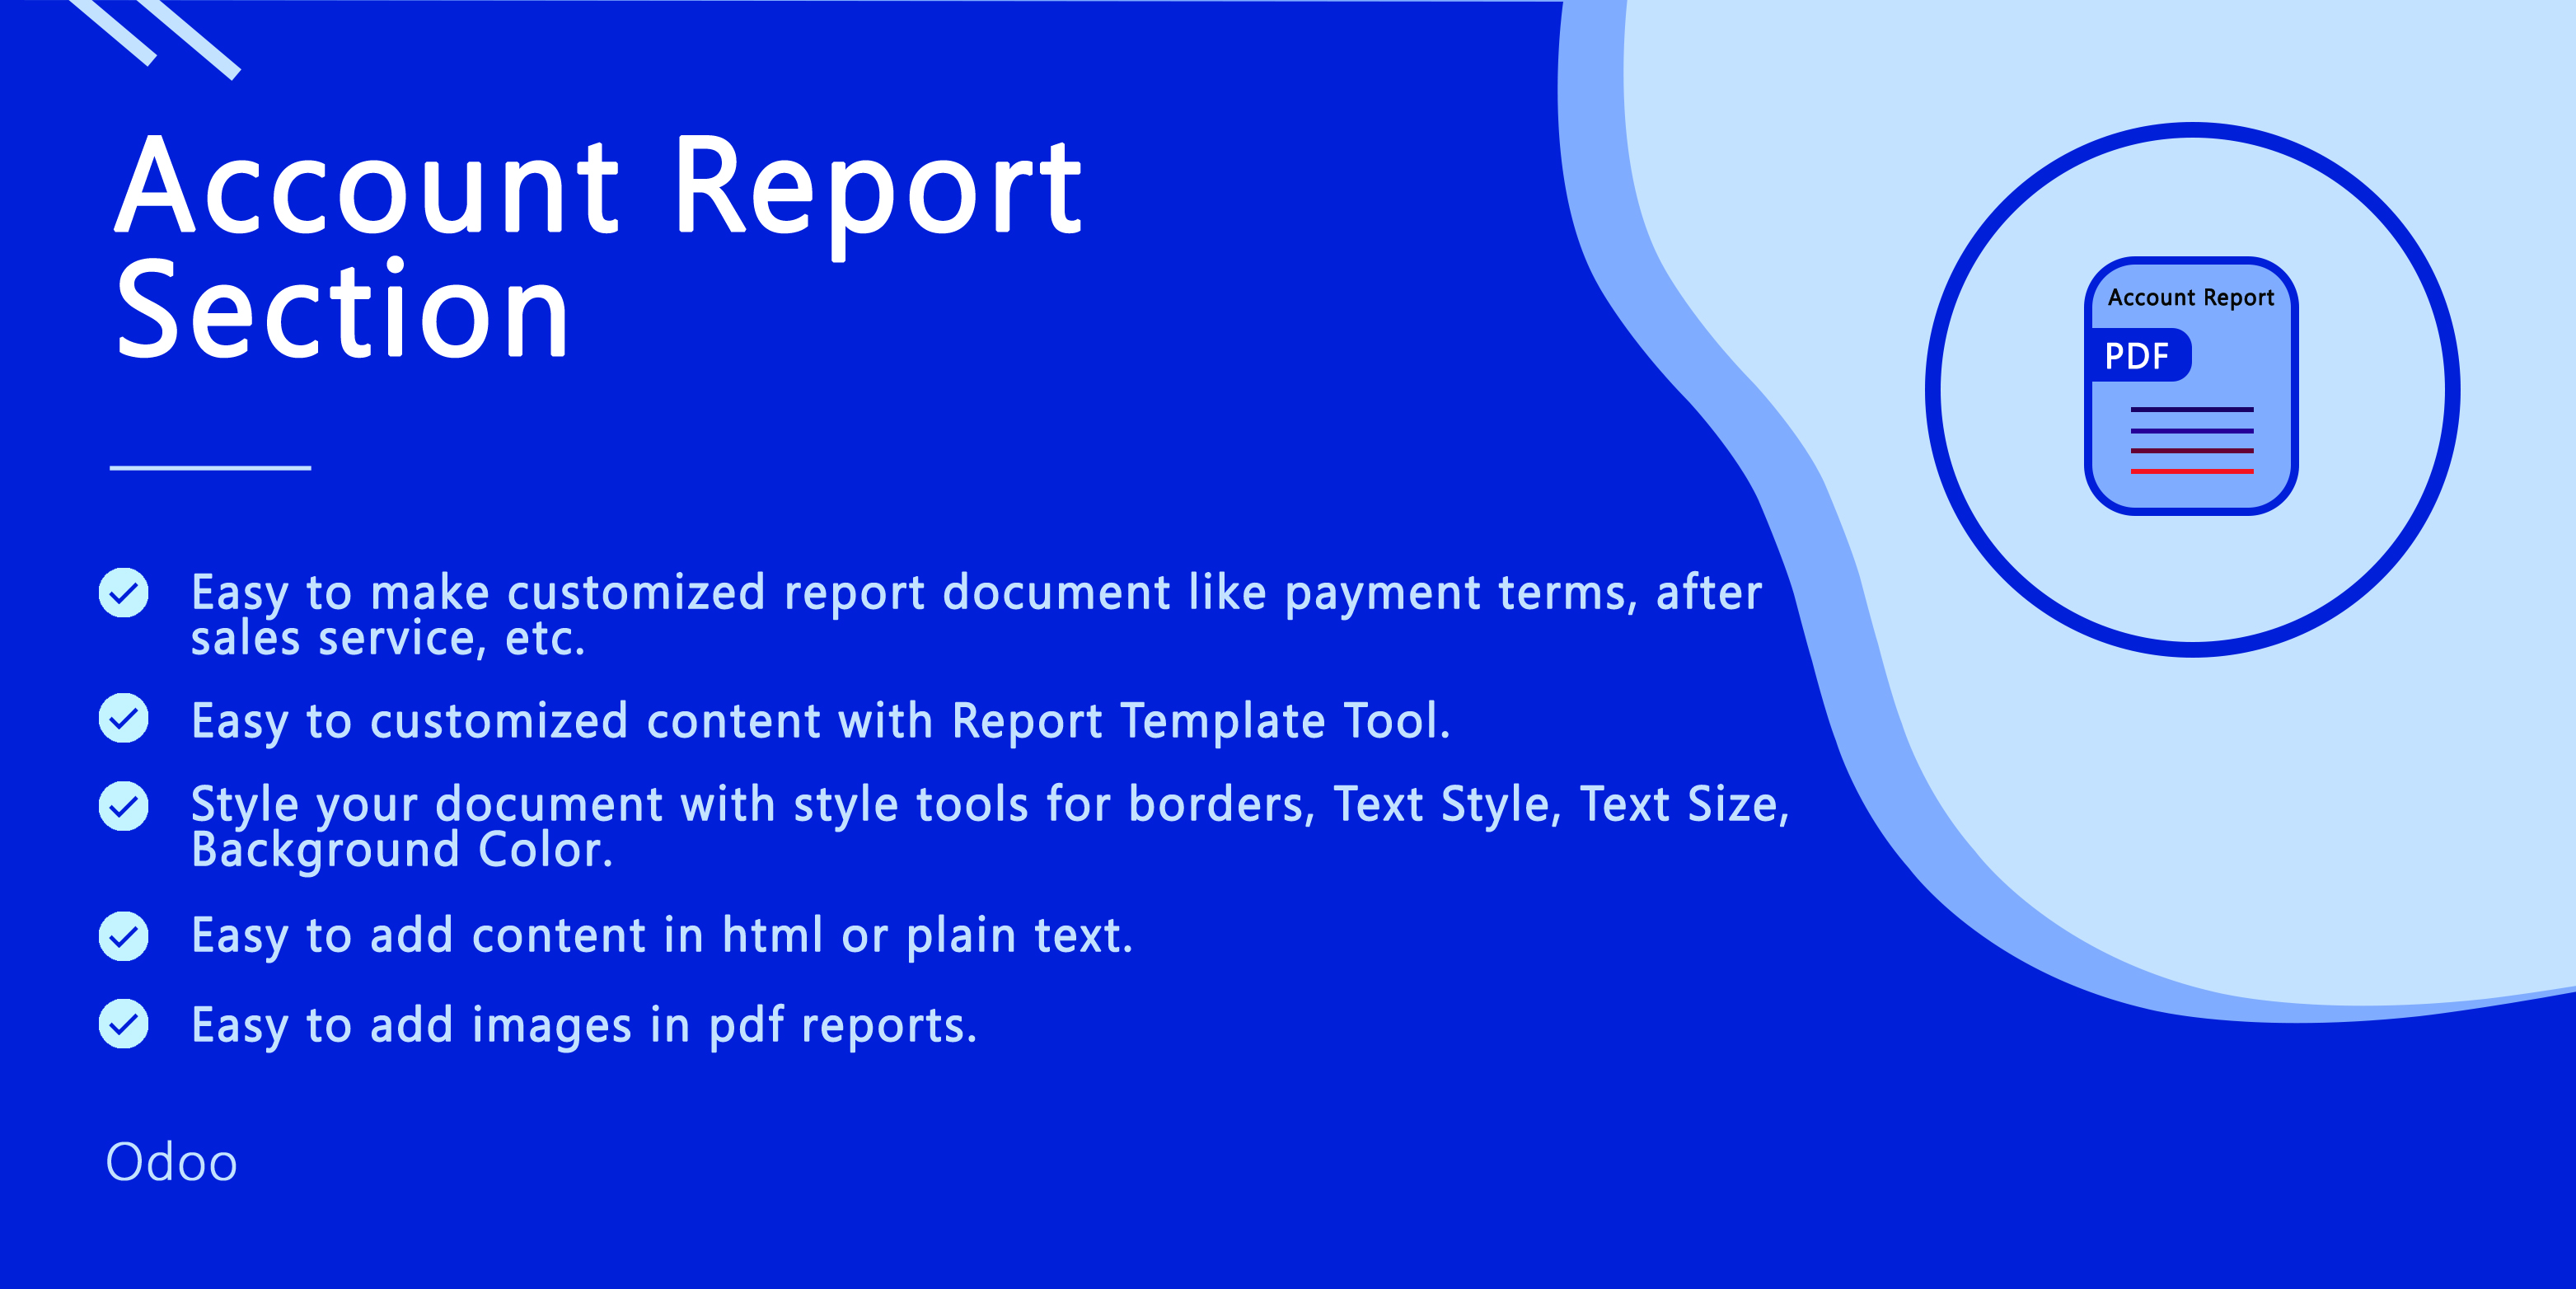 Account Report Section